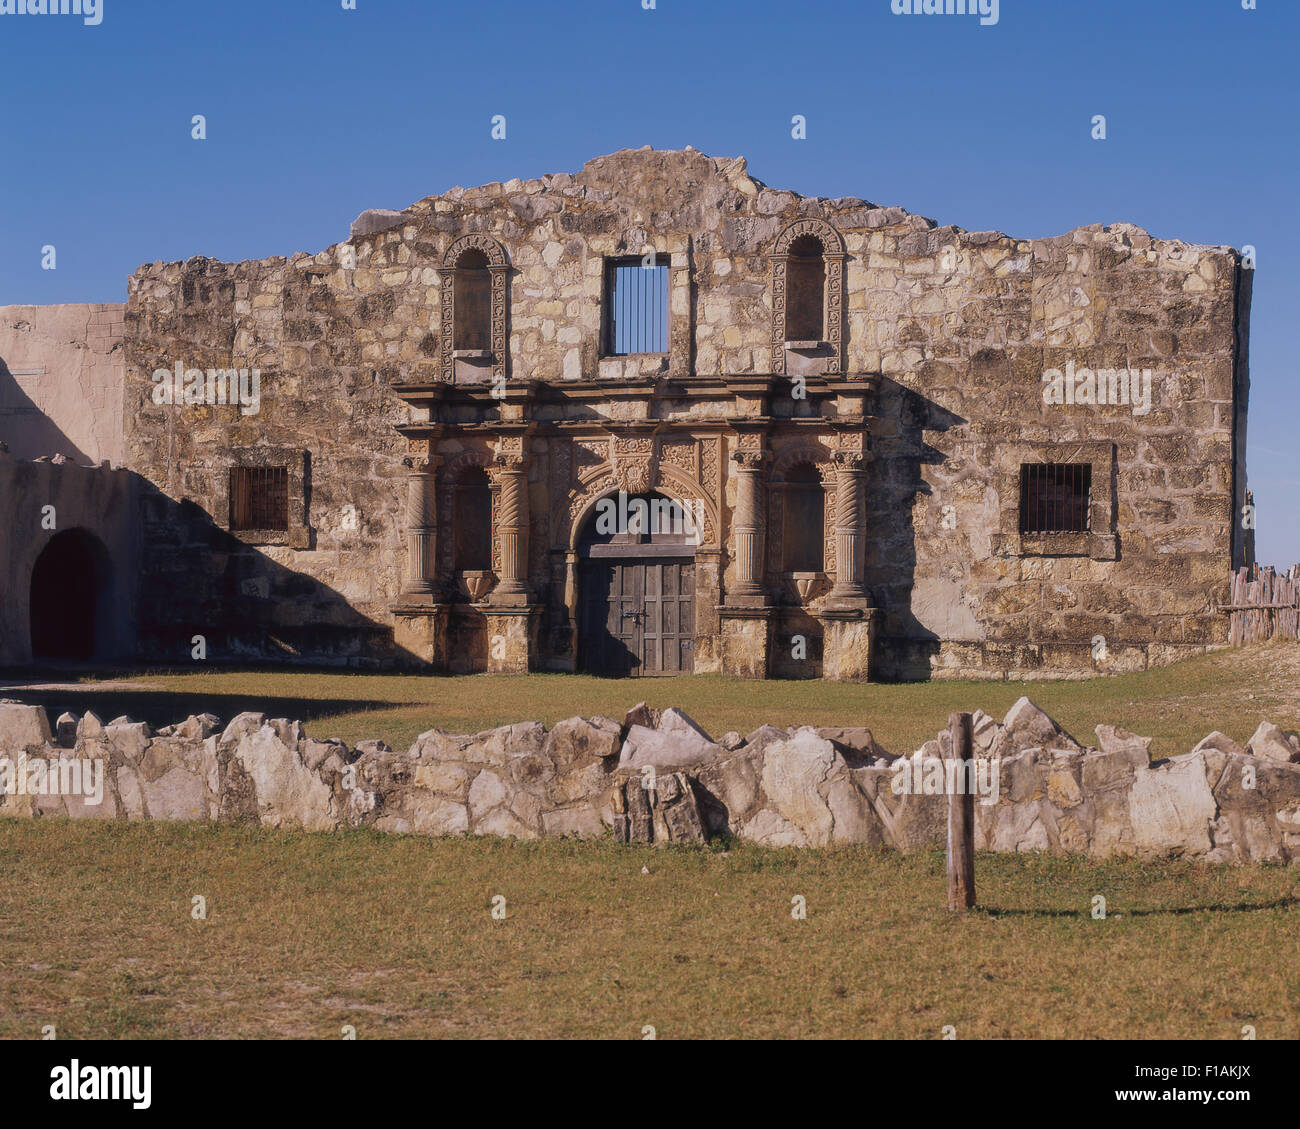 Alamo Village - Stock Image